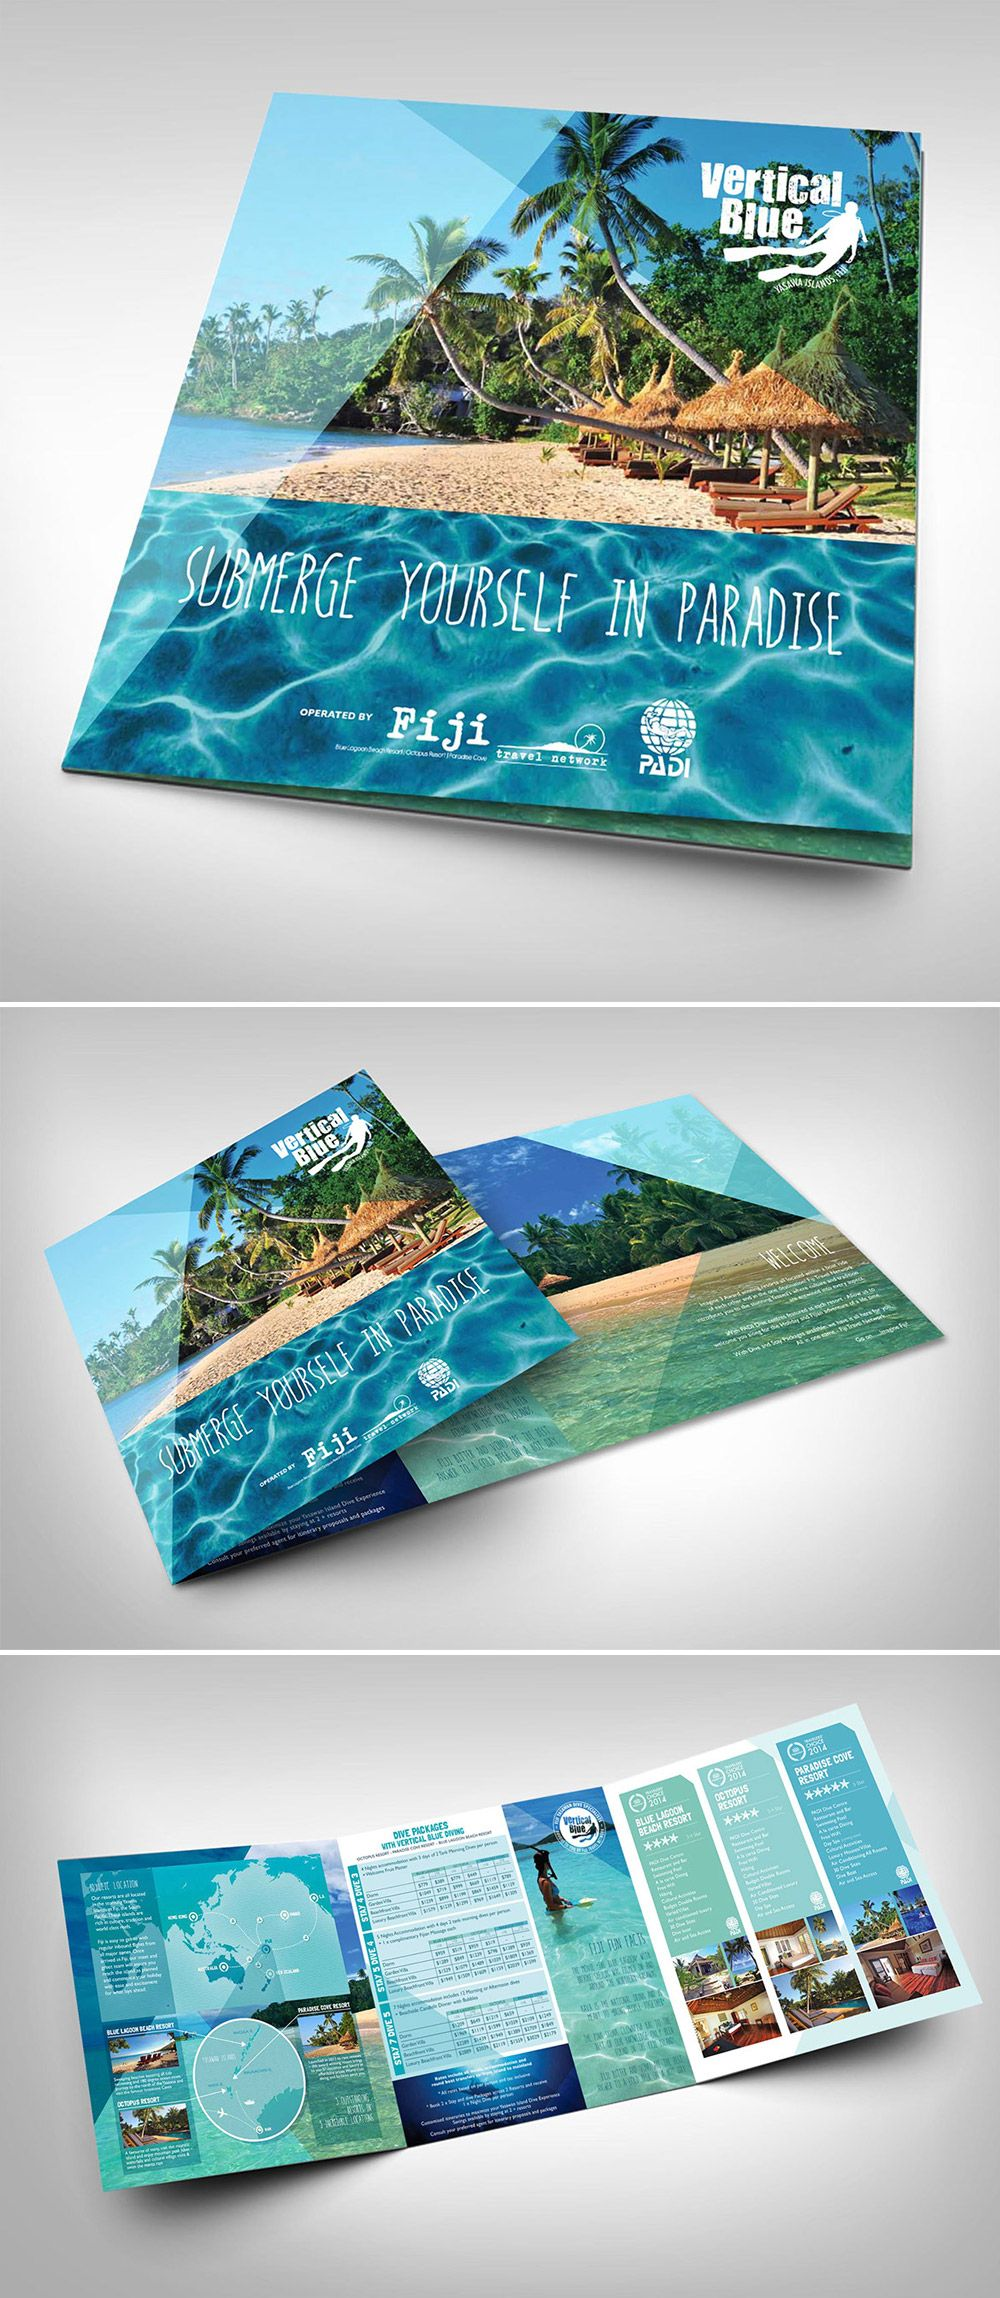 15 travel brochure examples with enticing designs brochure